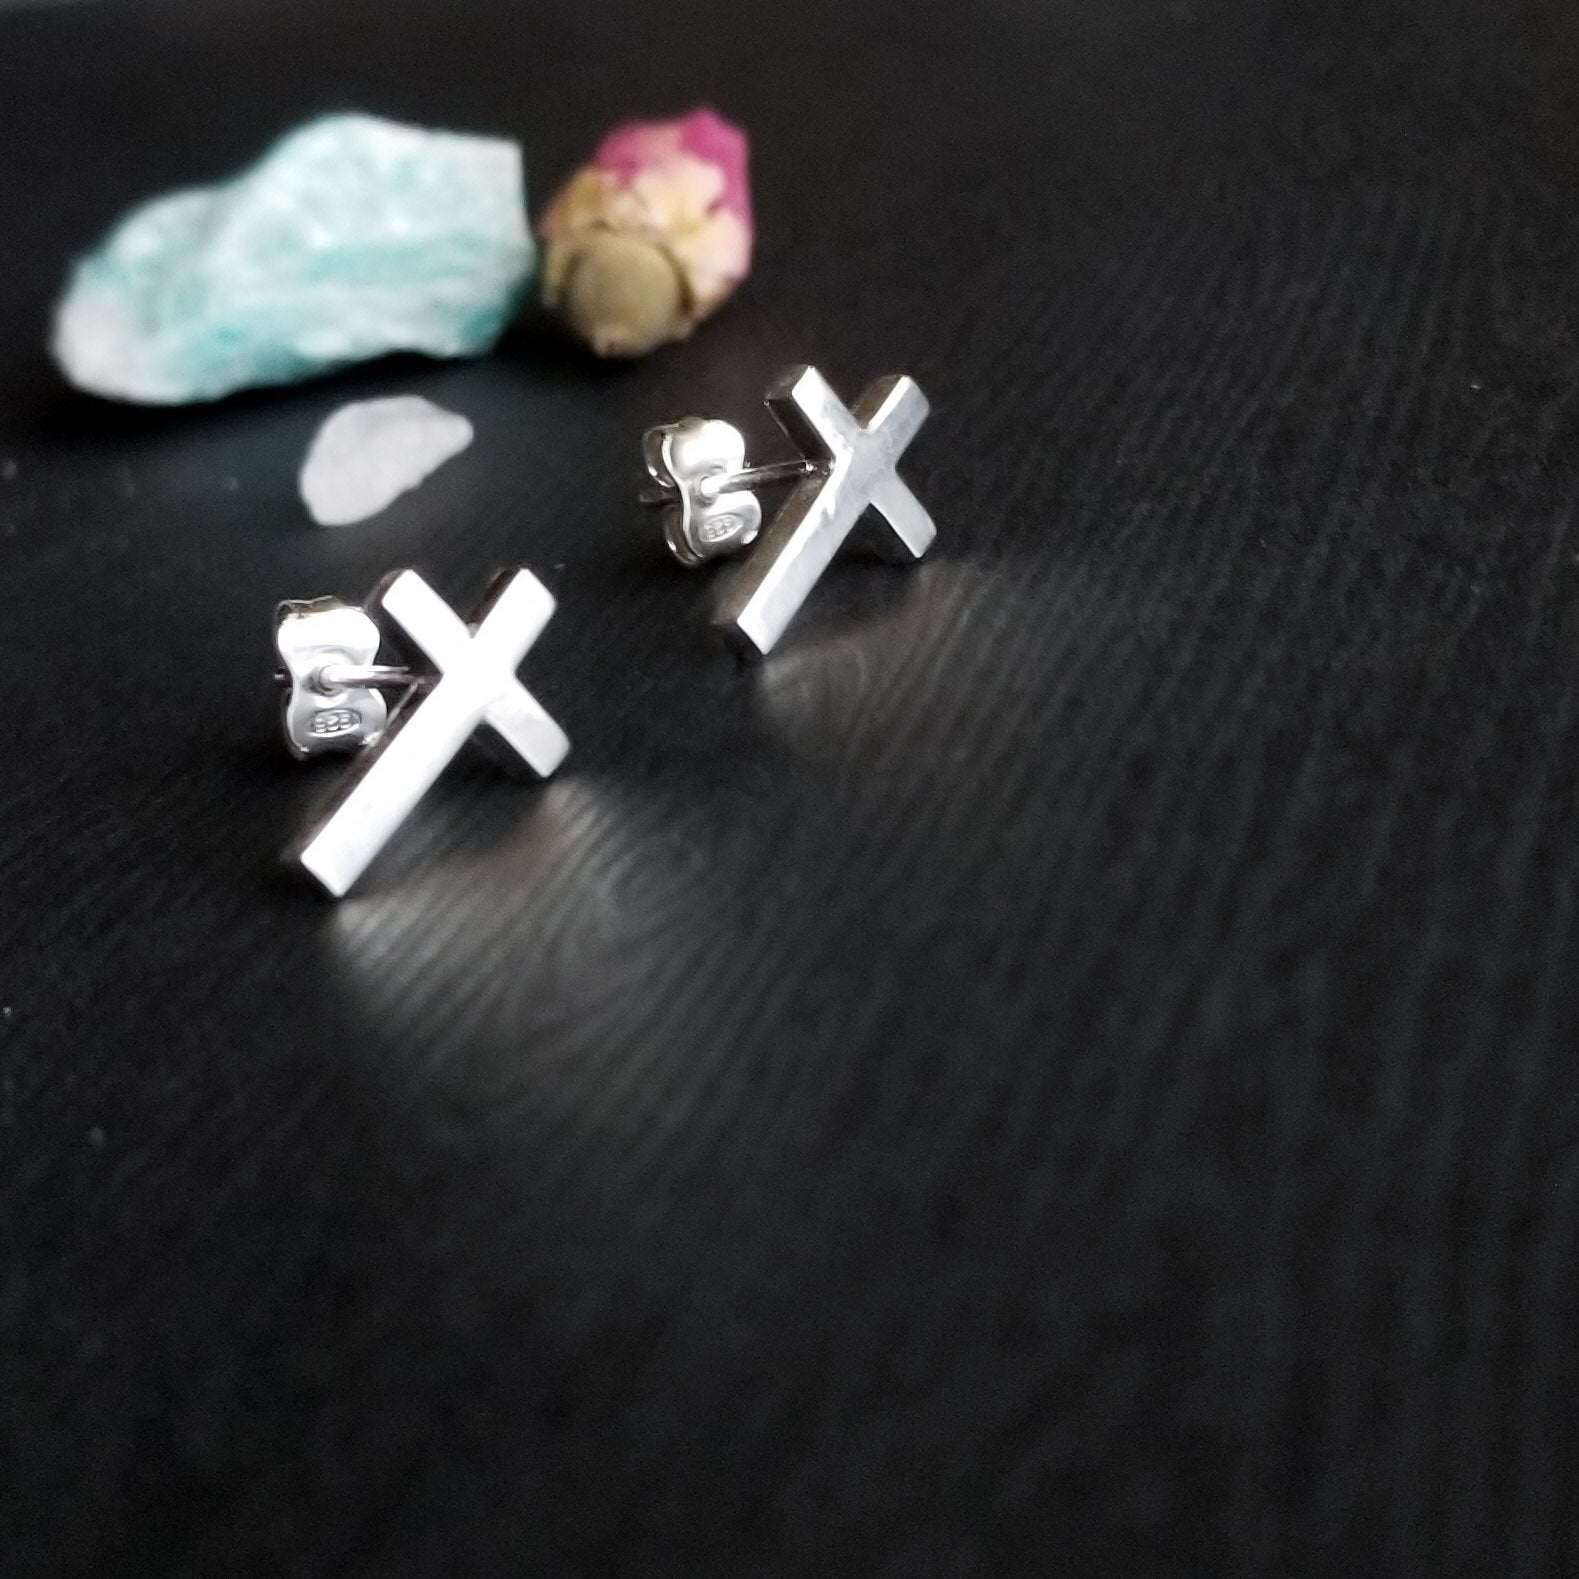 Simple Small Cross Earrings - Inchoo Bijoux